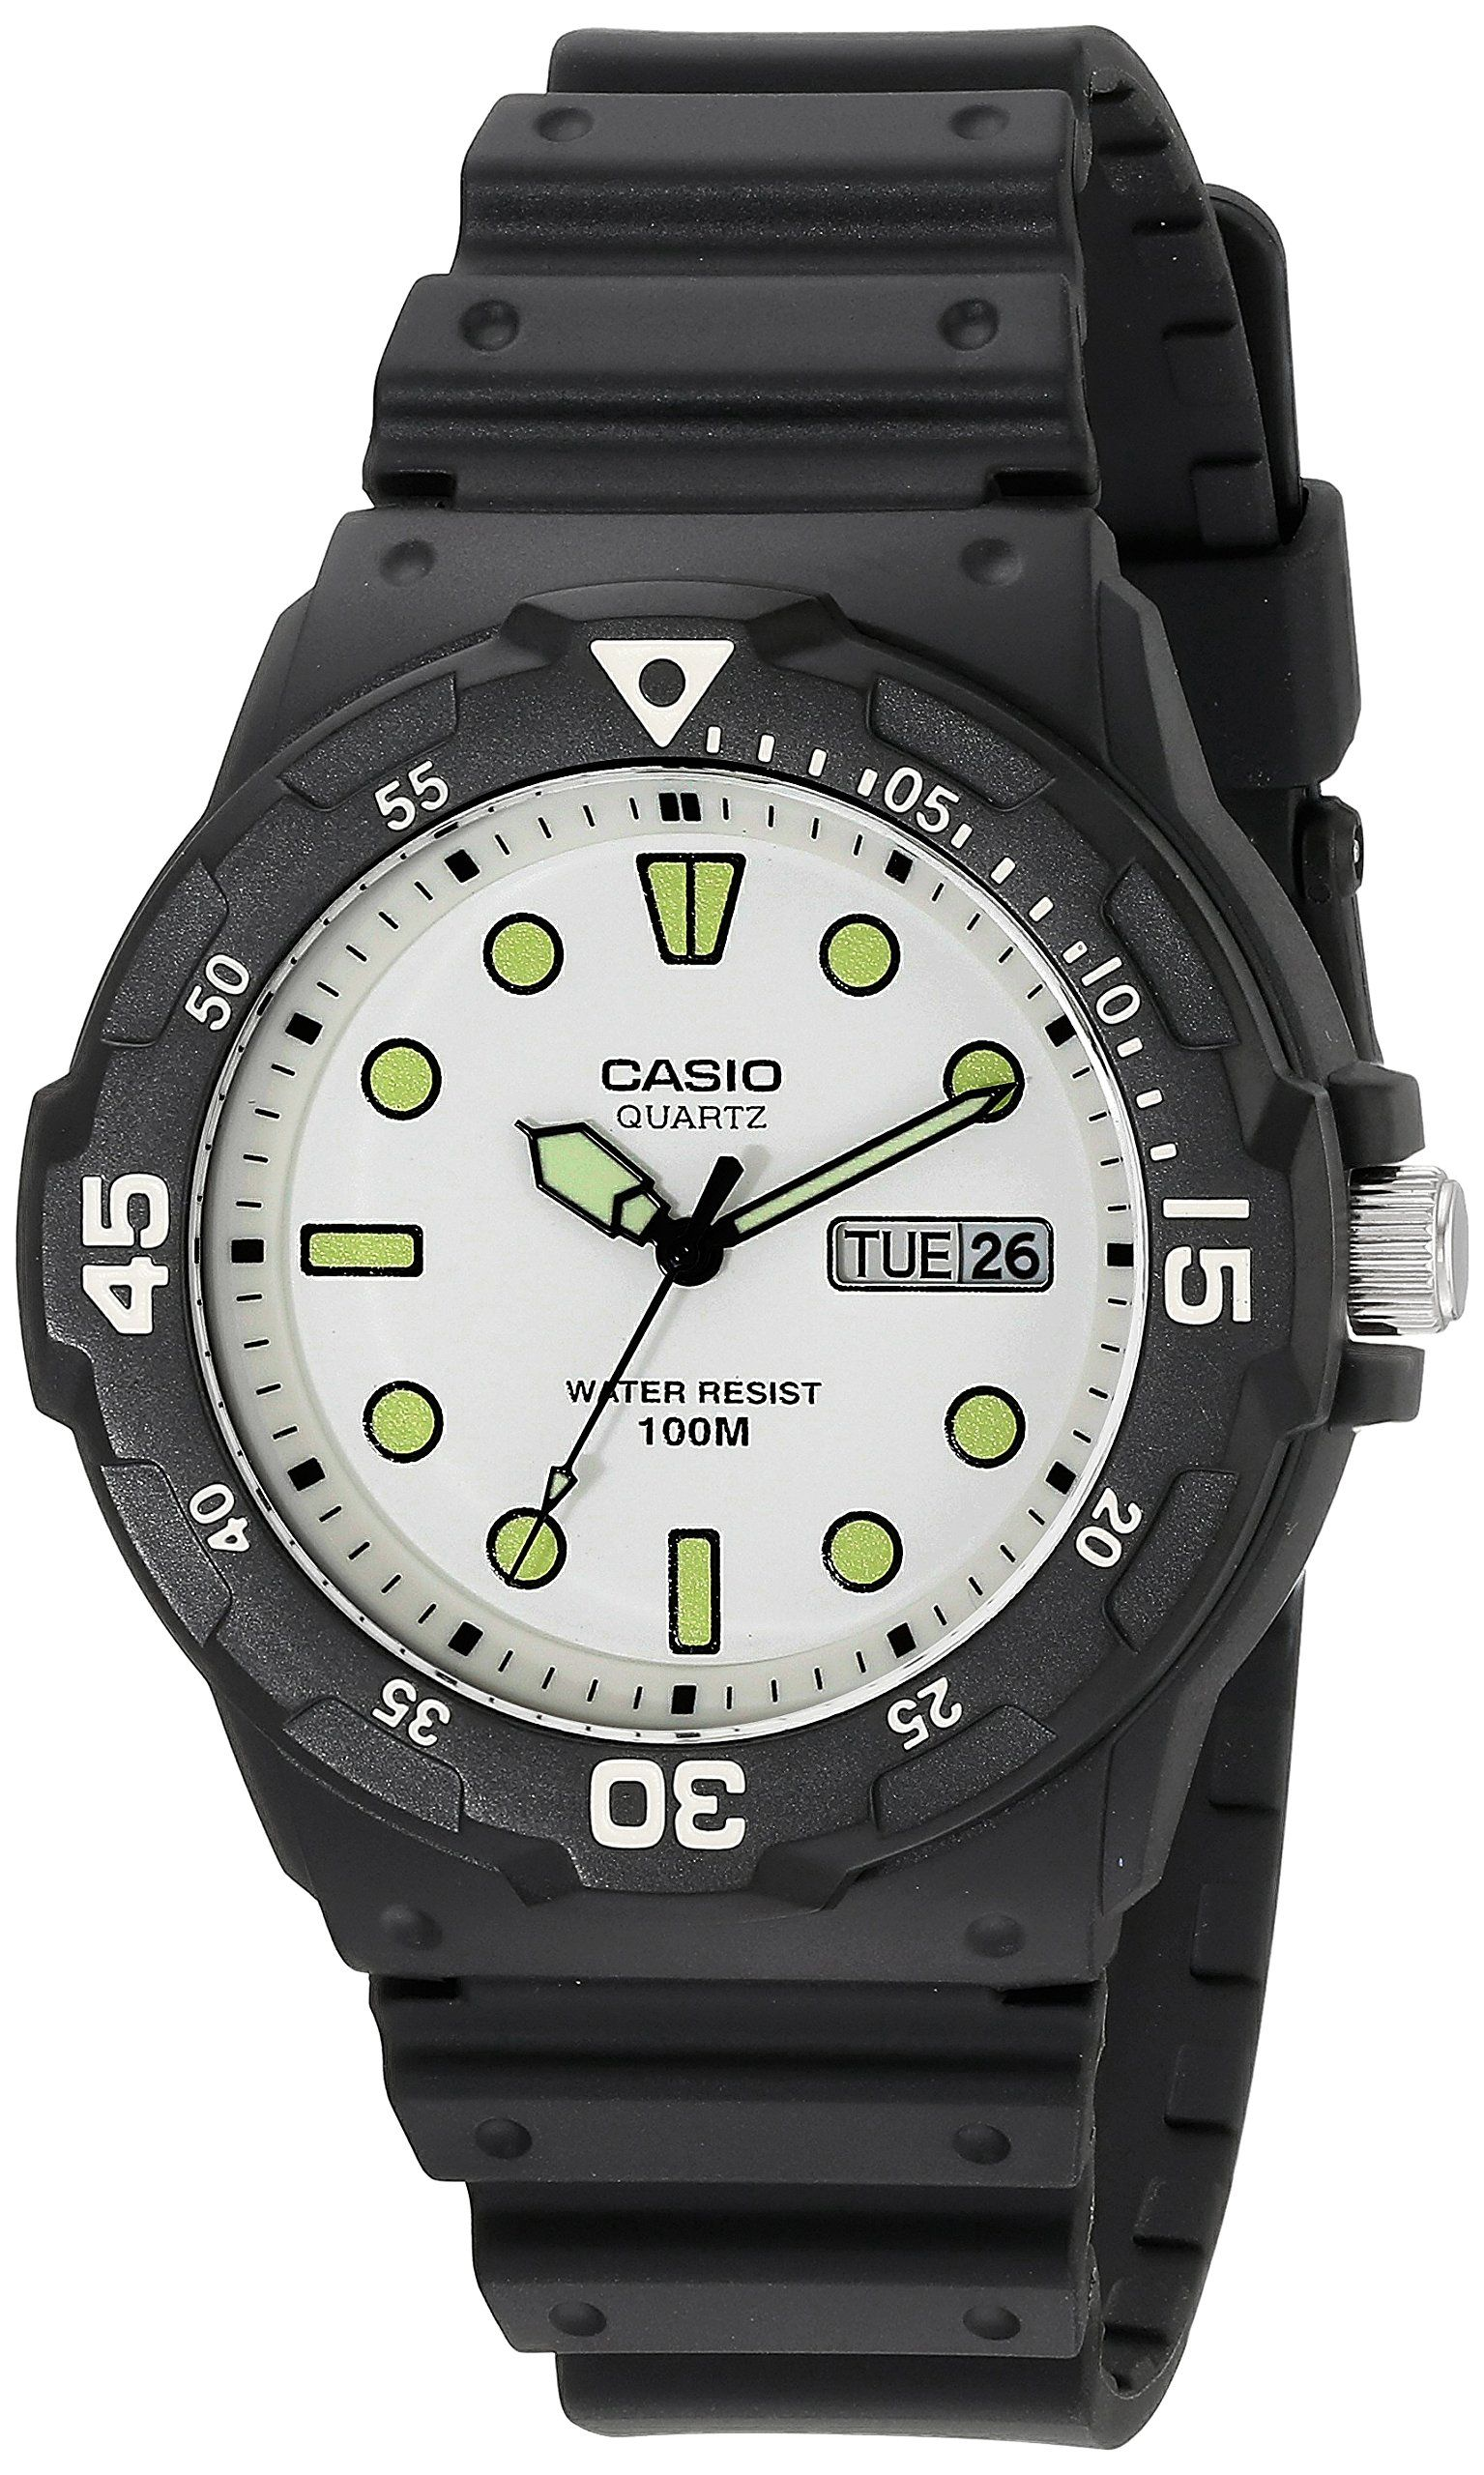 resin watches s watch casio prw pin digital atomic men